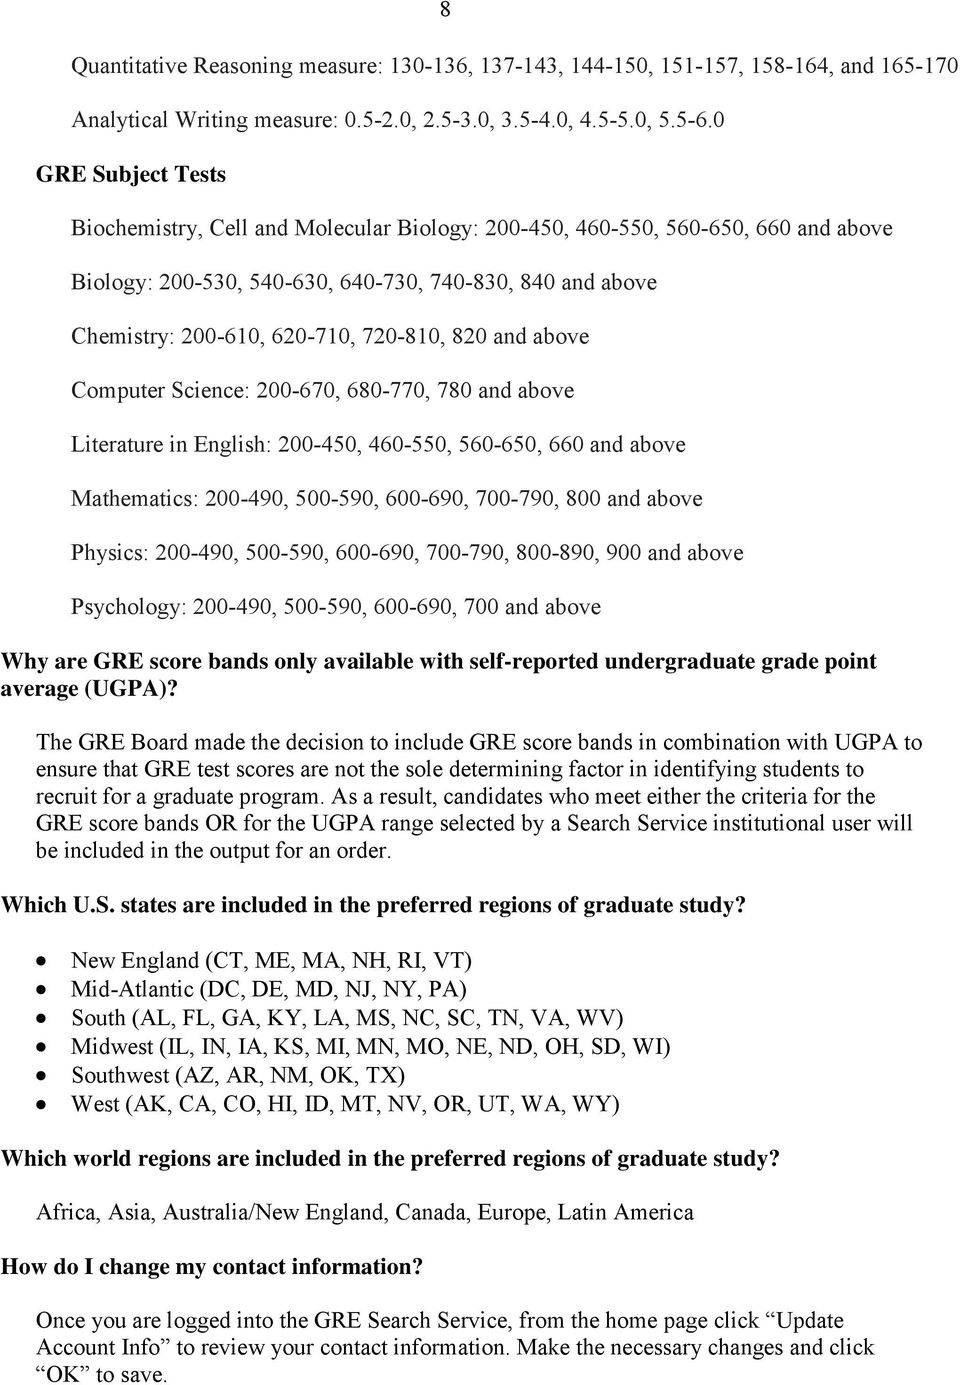 820 and above Computer Science: 200-670, 680-770, 780 and above Literature in English: 200-450, 460-550, 560-650, 660 and above Mathematics: 200-490, 500-590, 600-690, 700-790, 800 and above Physics: